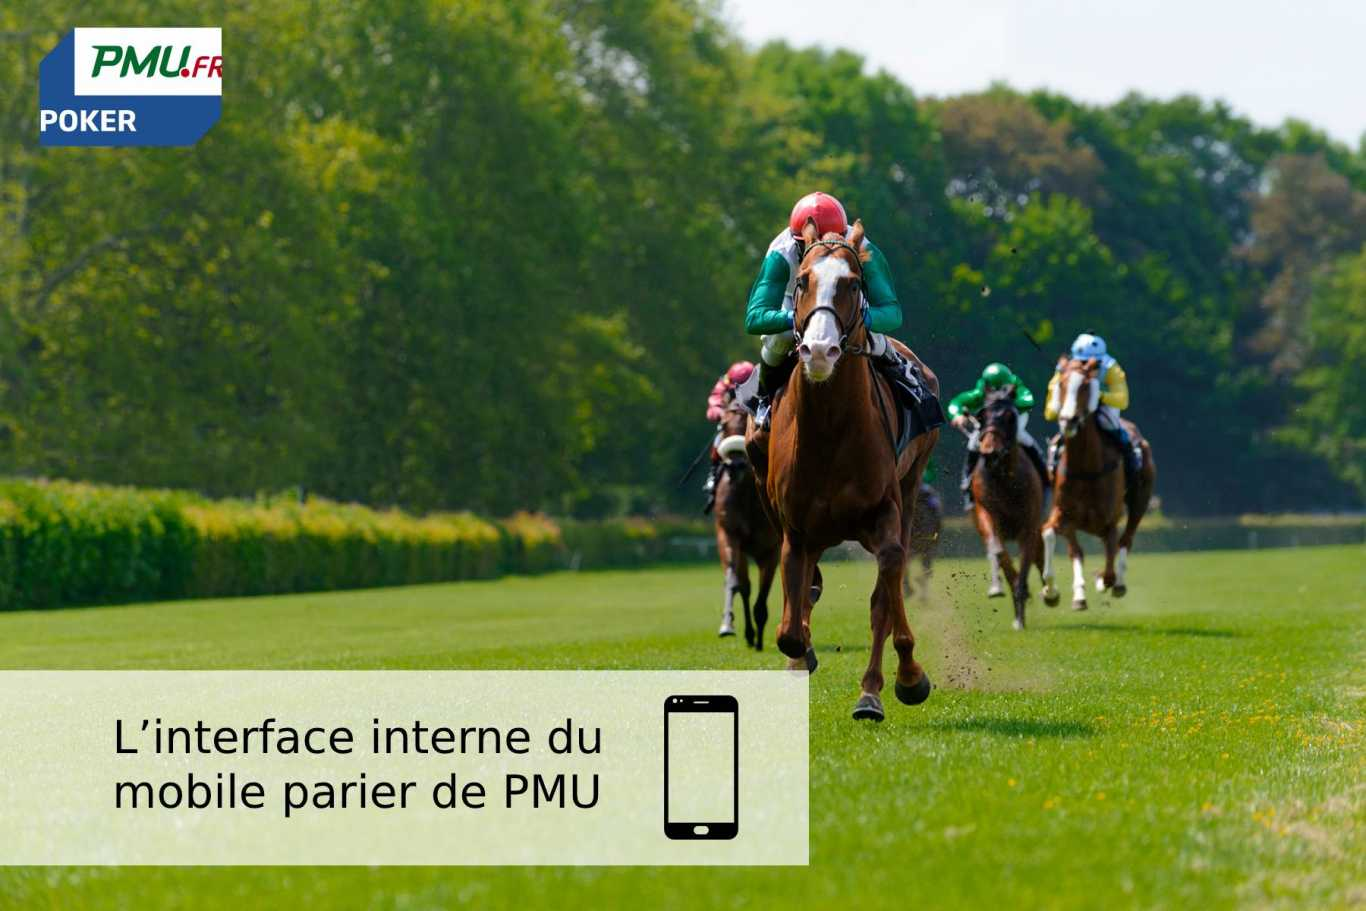 L'interface interne du mobile parier de PMU